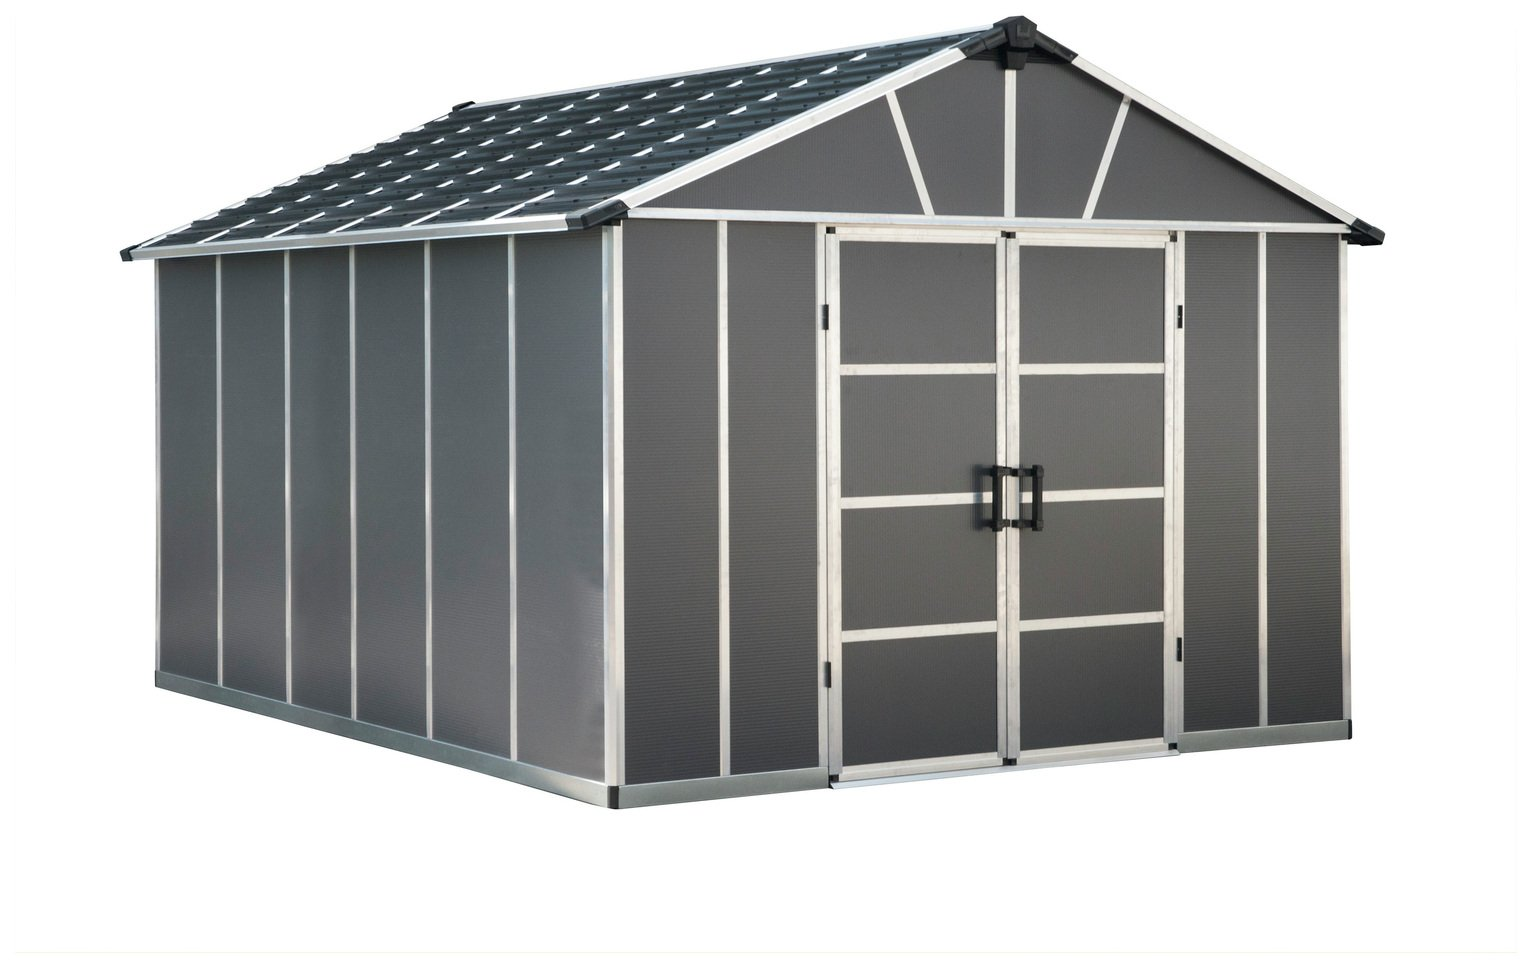 Palram Yukon Plastic 11x13ft Shed - Dark Grey Best Price, Cheapest Prices